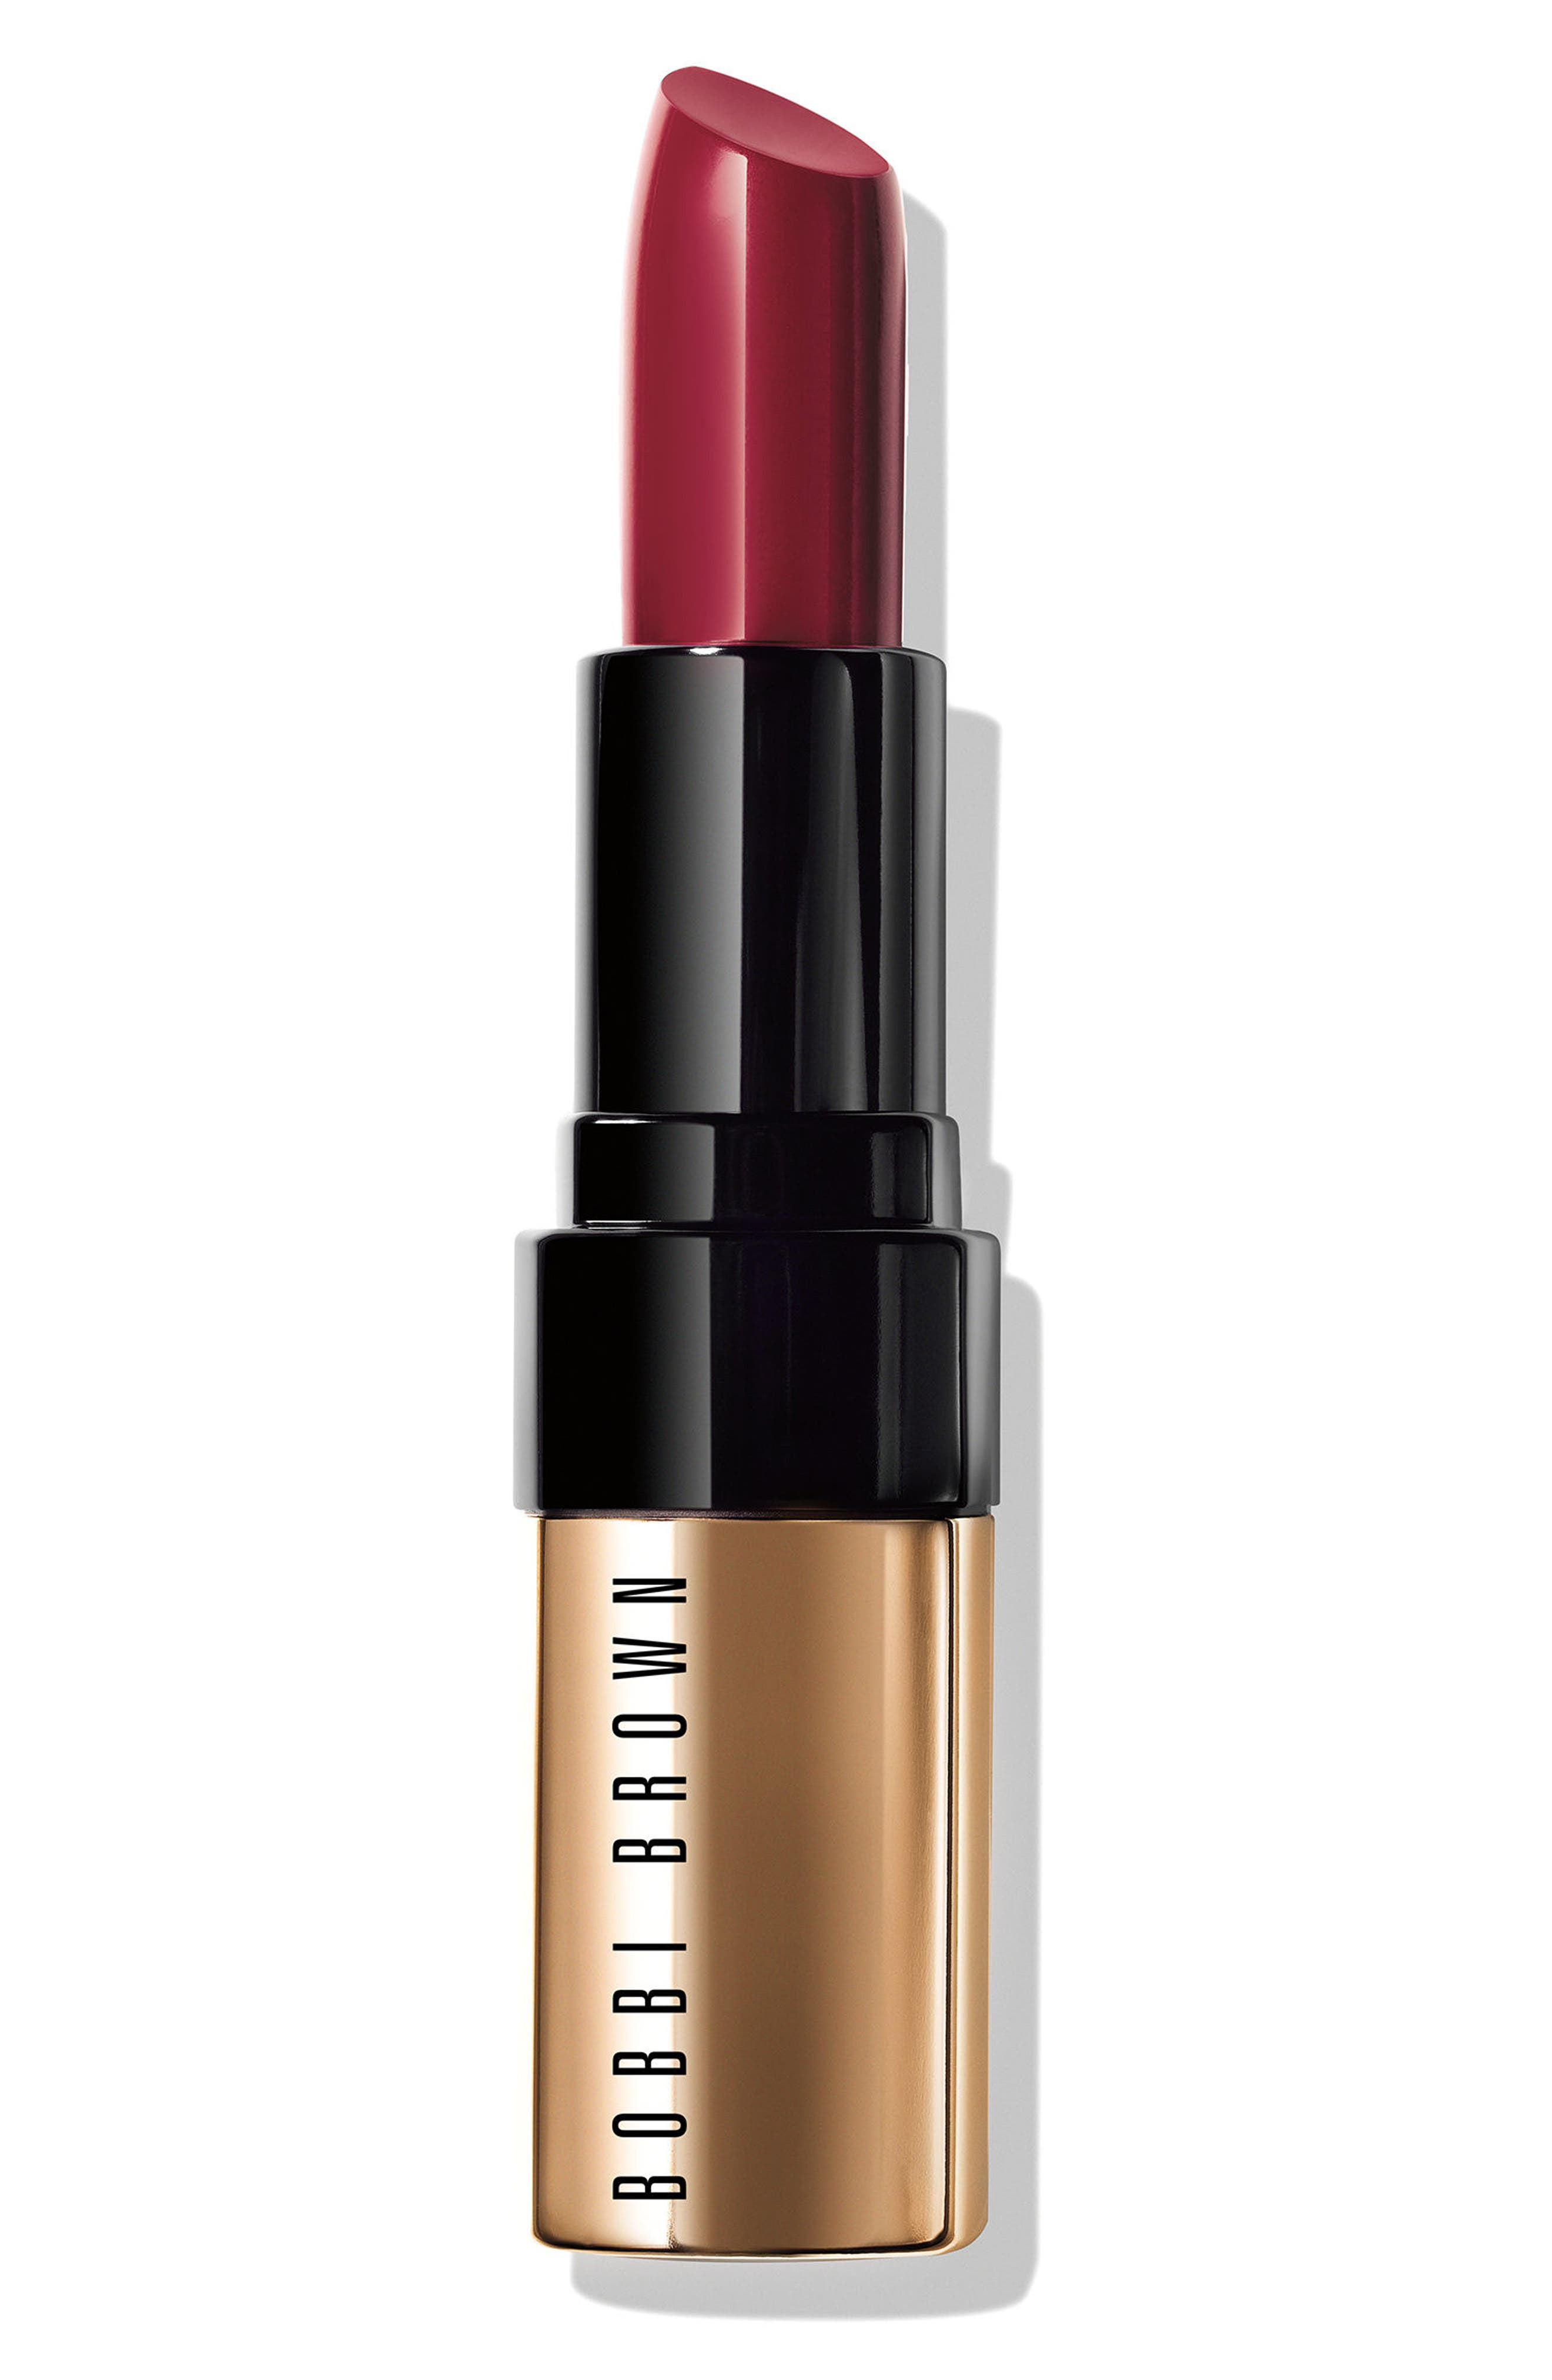 Luxe Lip Color - Rose Blossom in Antique Rose